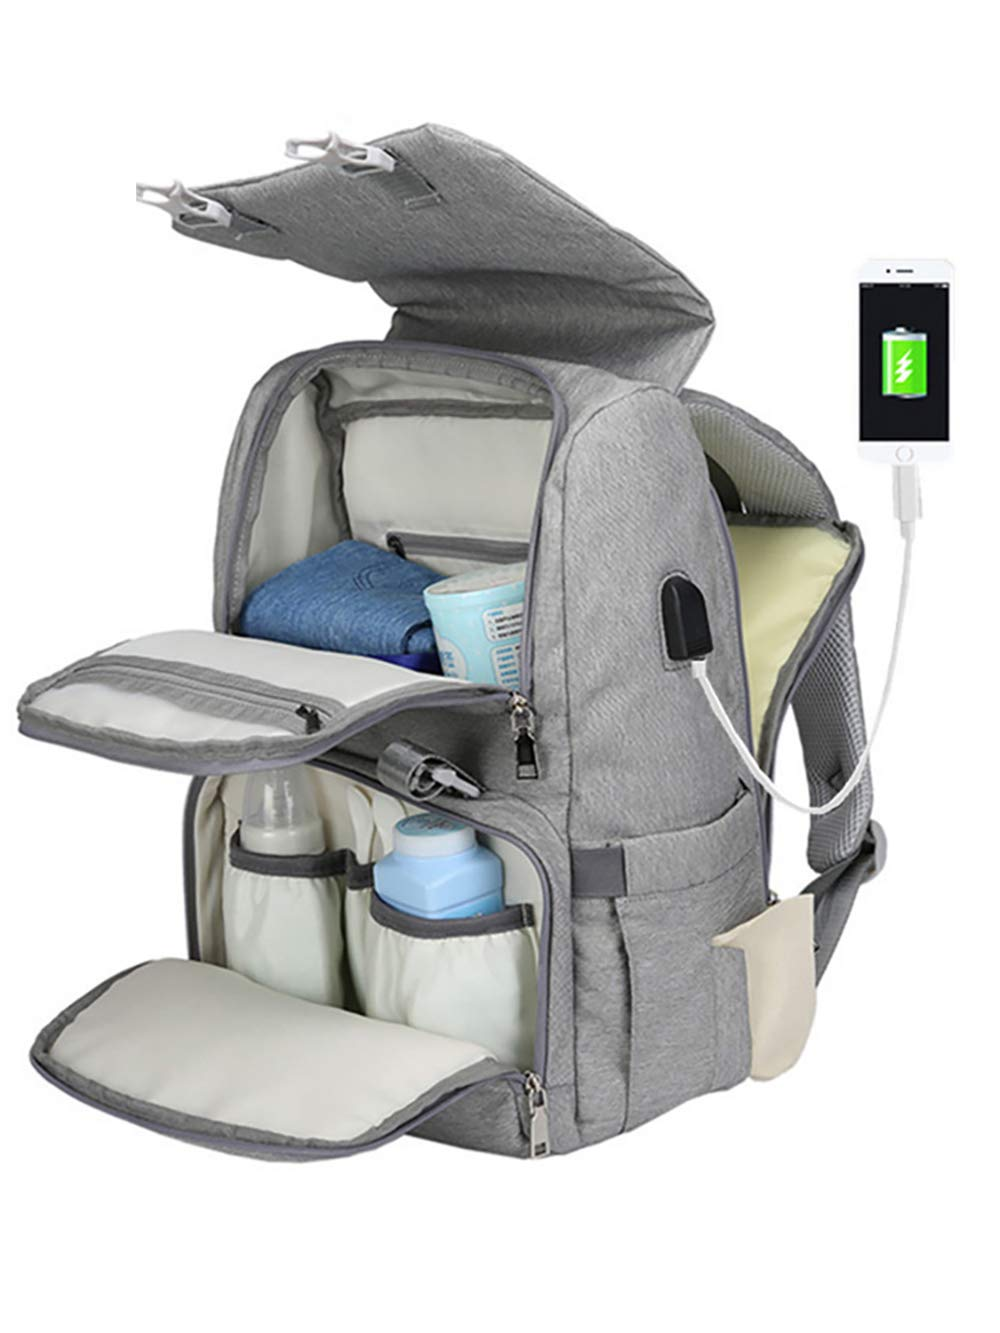 COCOCKA Diaper Bag Backpack with Changing Pad,USB Charging Port &Stoller Straps